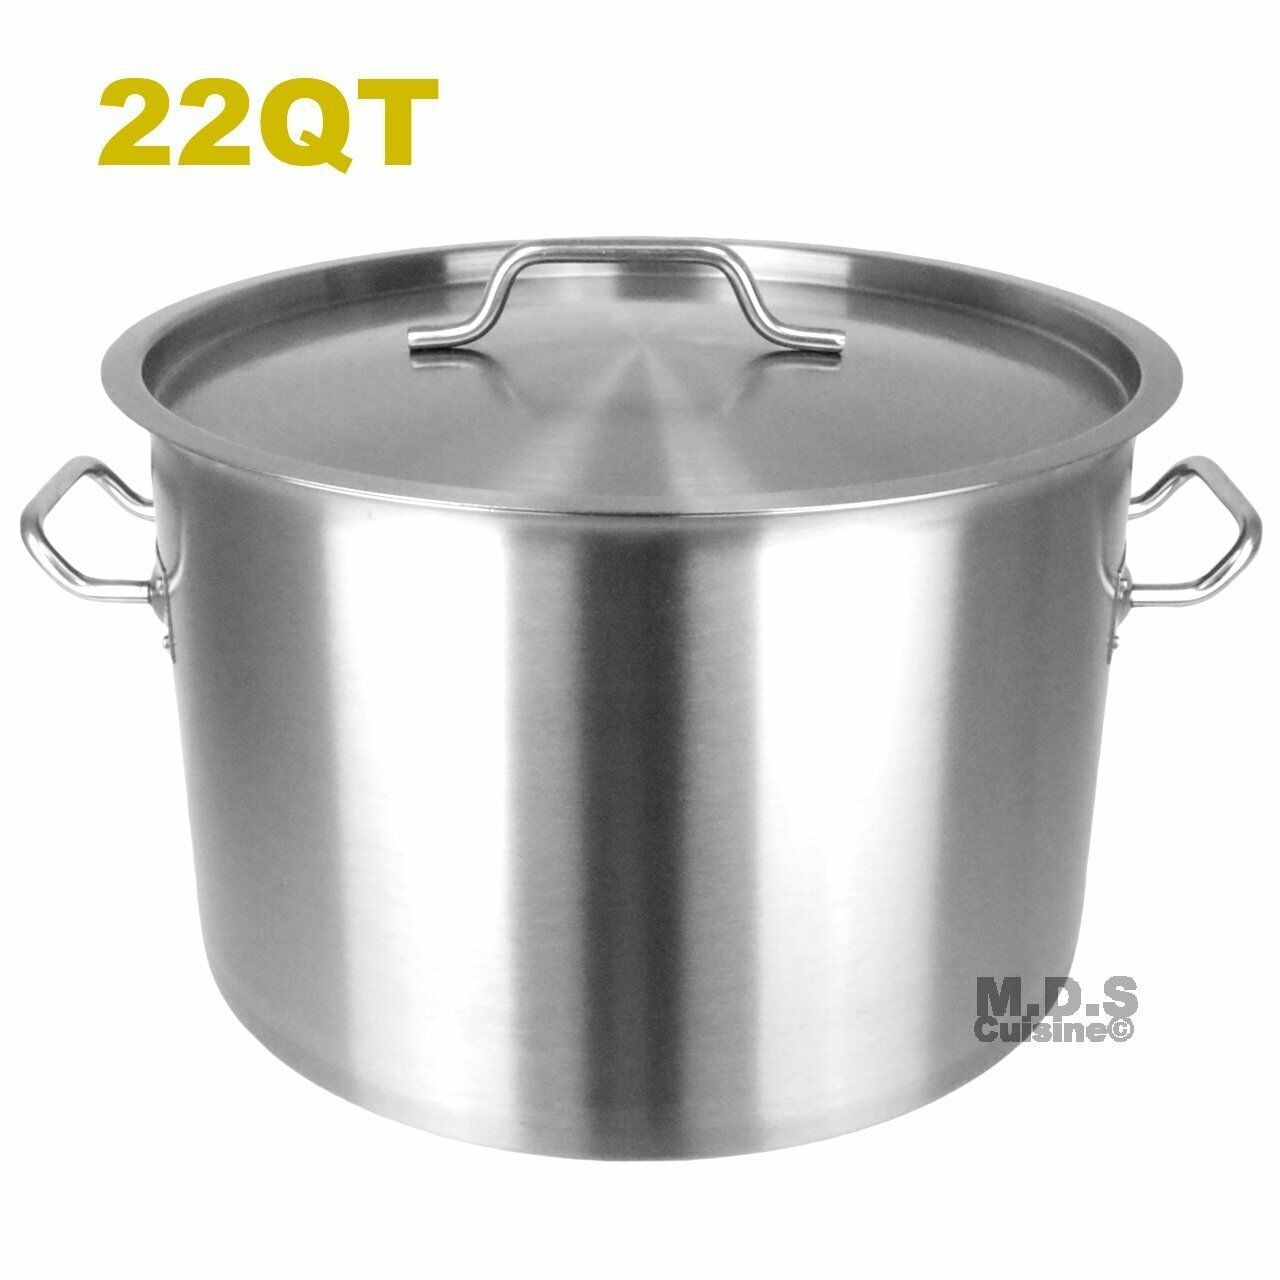 Dutch Oven Pot 22 QT Heavy Duty capsulated Bas avec Couvercle Traditionnelle Olla...